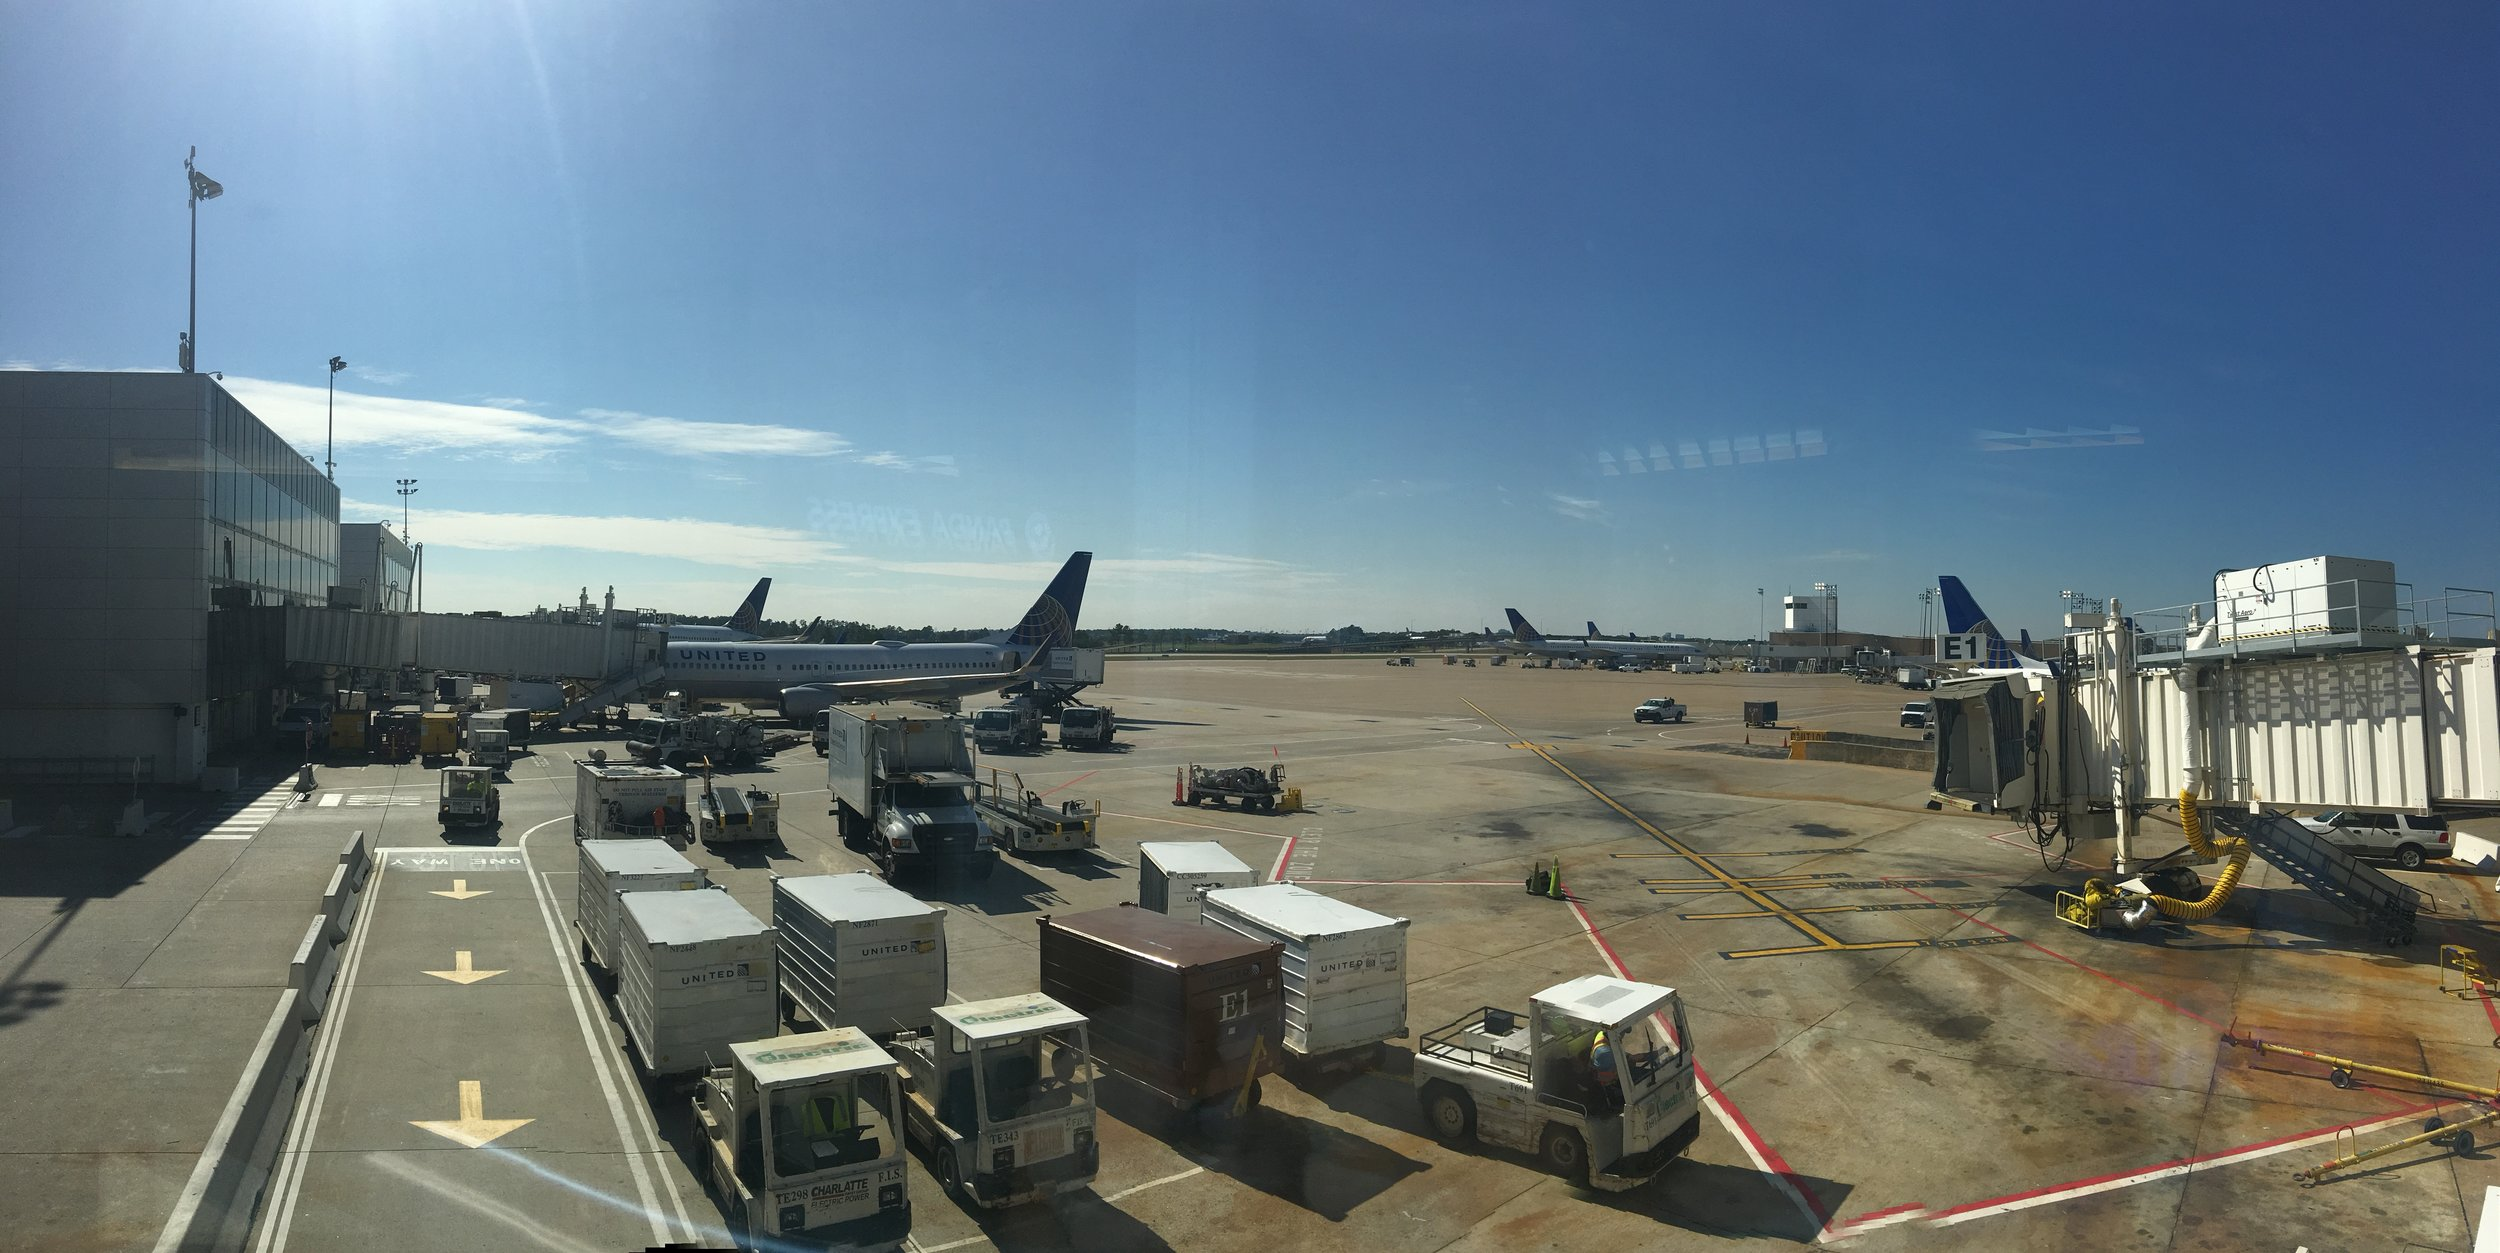 International flight section of the airport. Lots of United planes going all over.